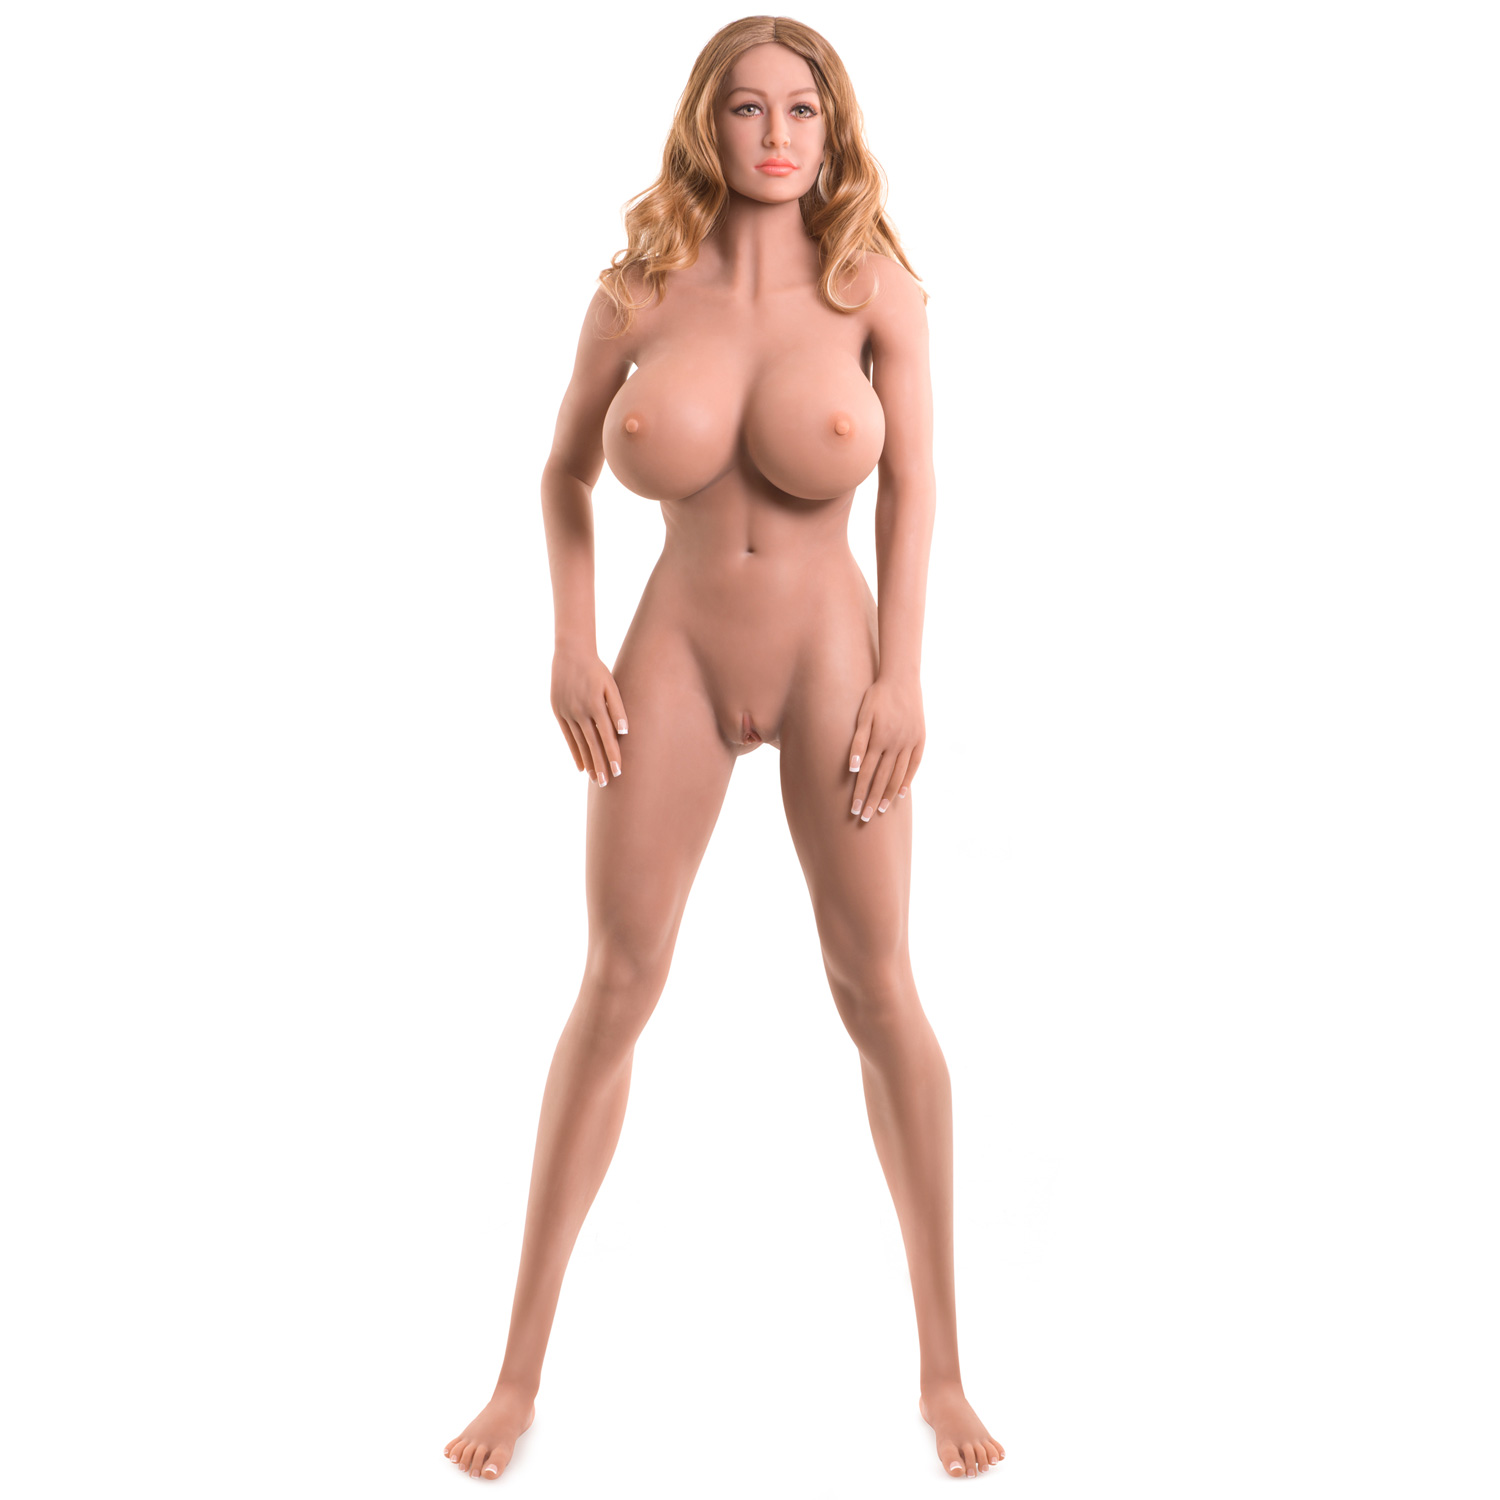 Pipedream Extreme Ultimate Fantasy Dolls Bianca Sexdukke thumbnail